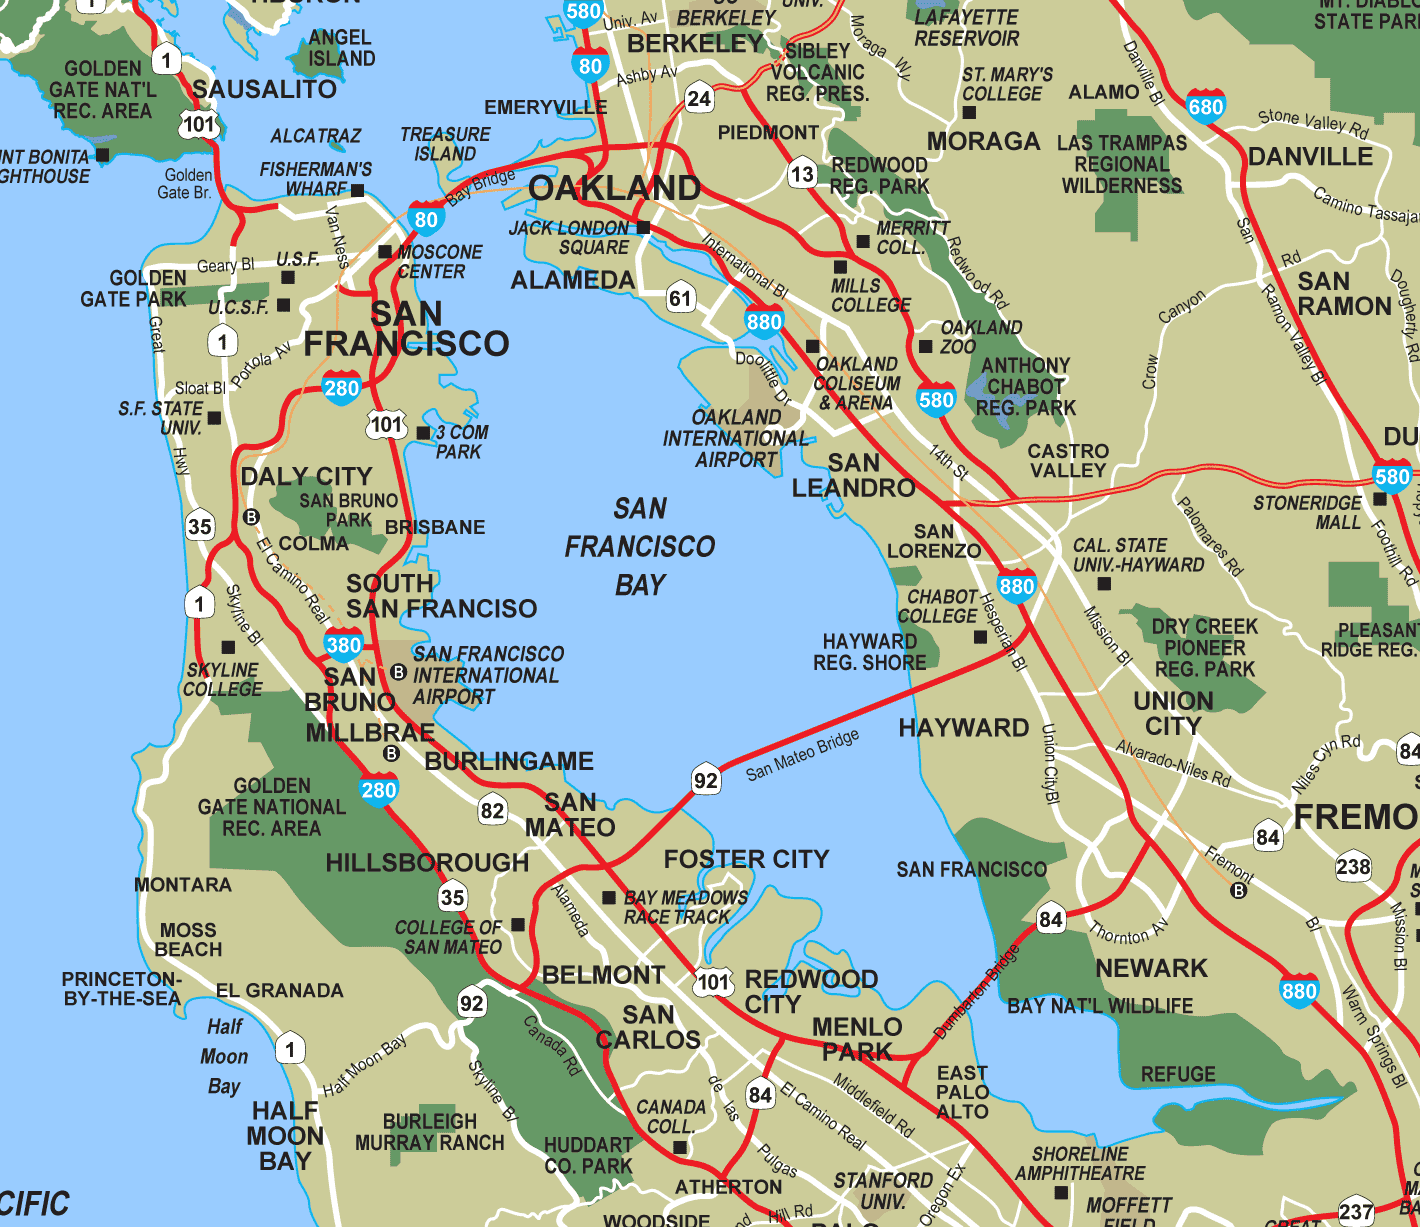 San Francisco Bay Map San Francisco Bay • Mapsof.net